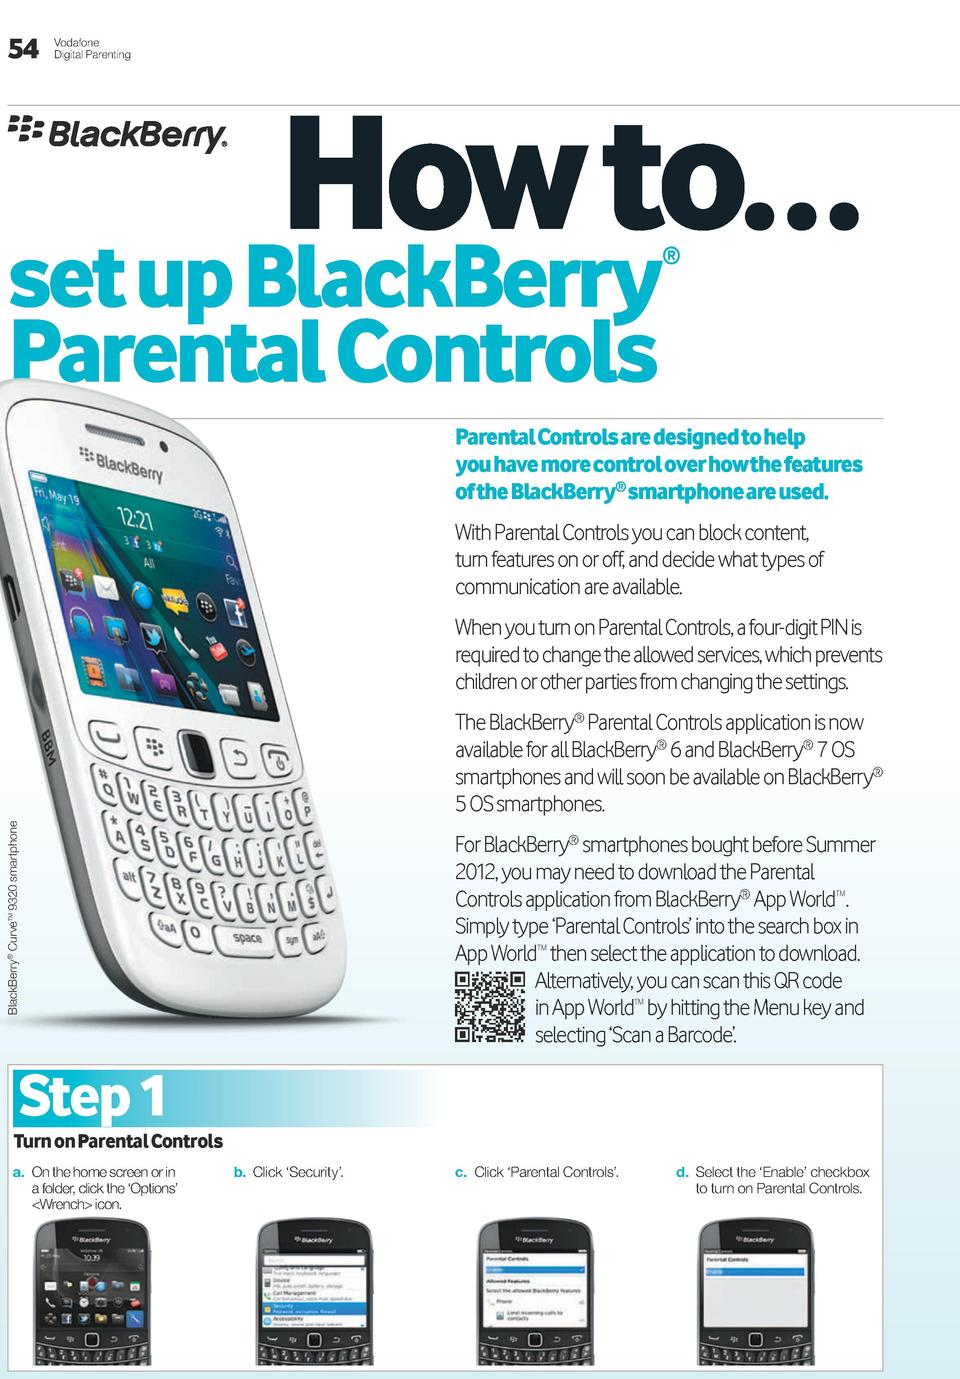 54  Vodafone Digital Parenting  how to    set up BlackBerry     Parental controls  Parental controls are designed to help ...